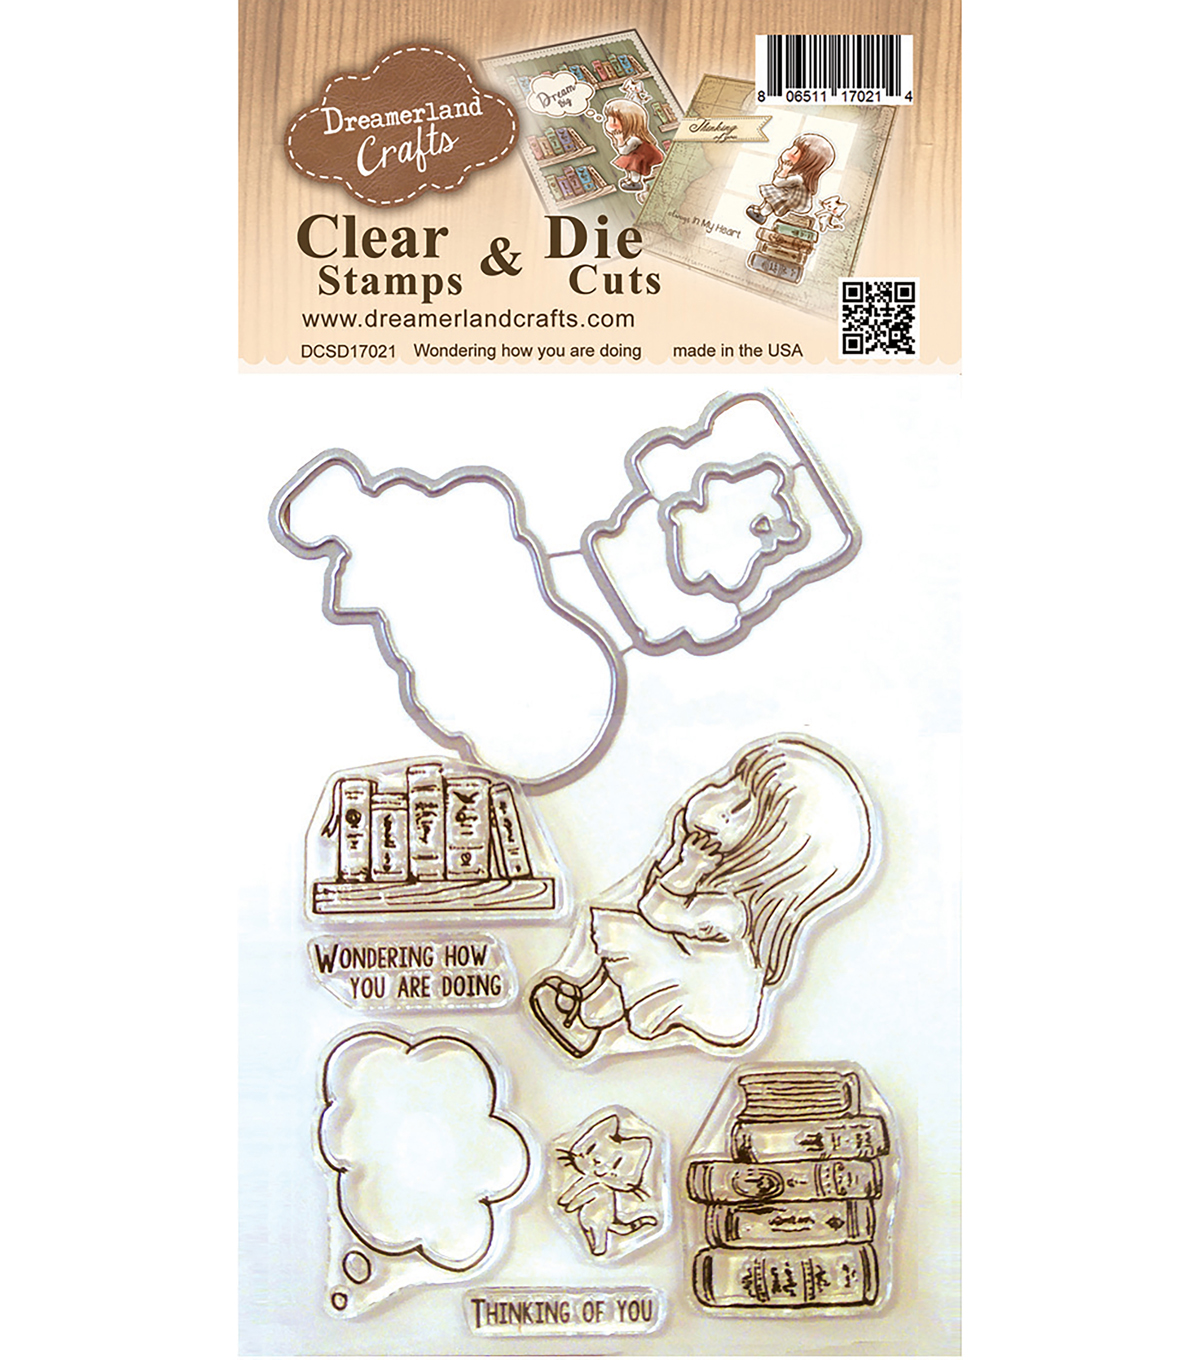 Dreamerland Crafts Clear Stamp & Die Set-Wondering How You Are Doing